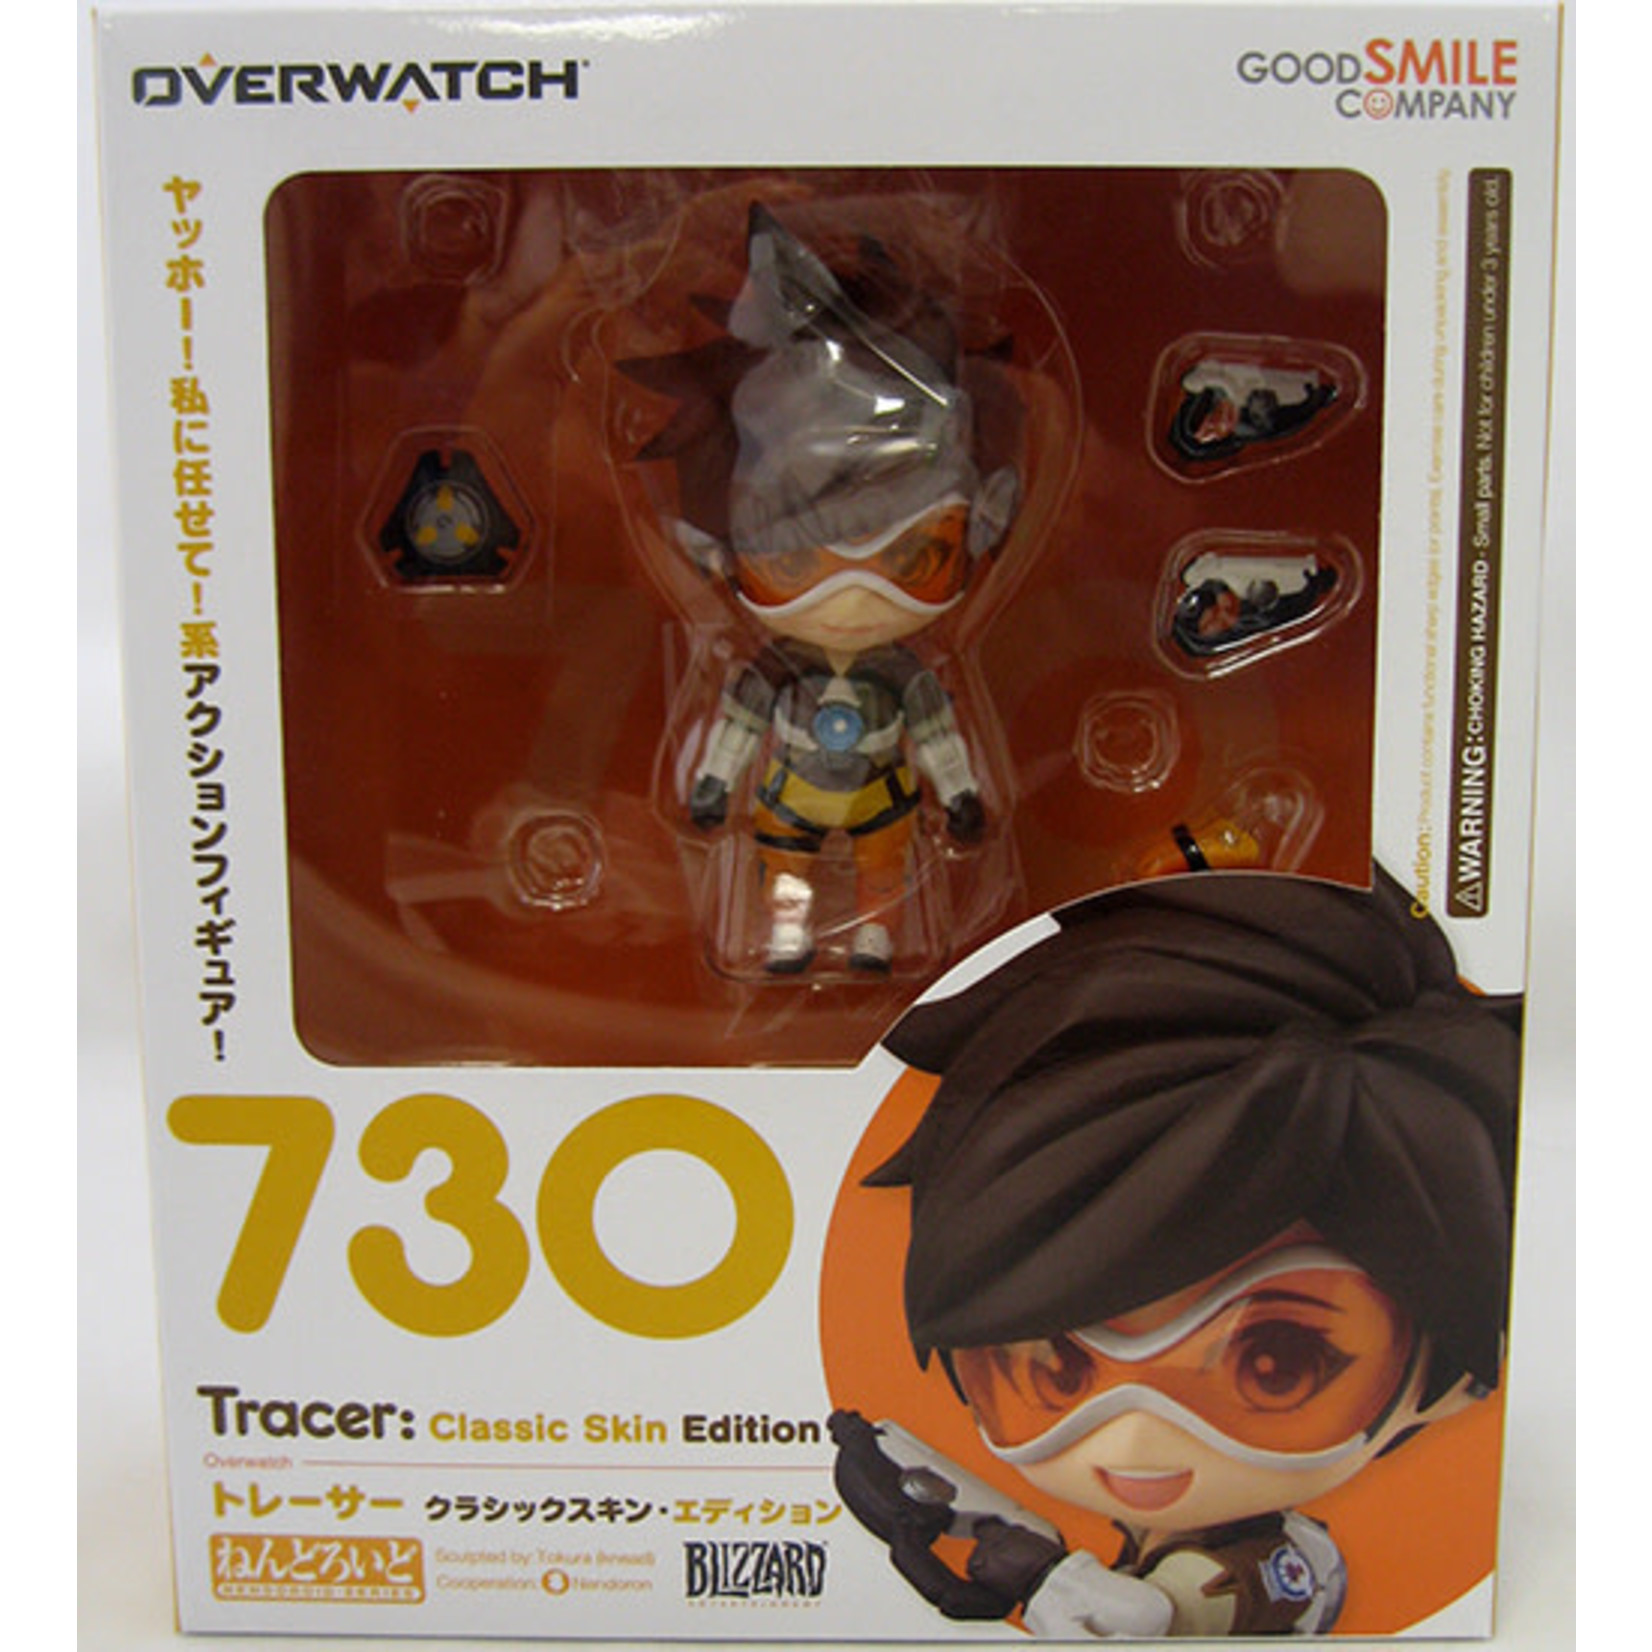 Overwatch Tracer 730